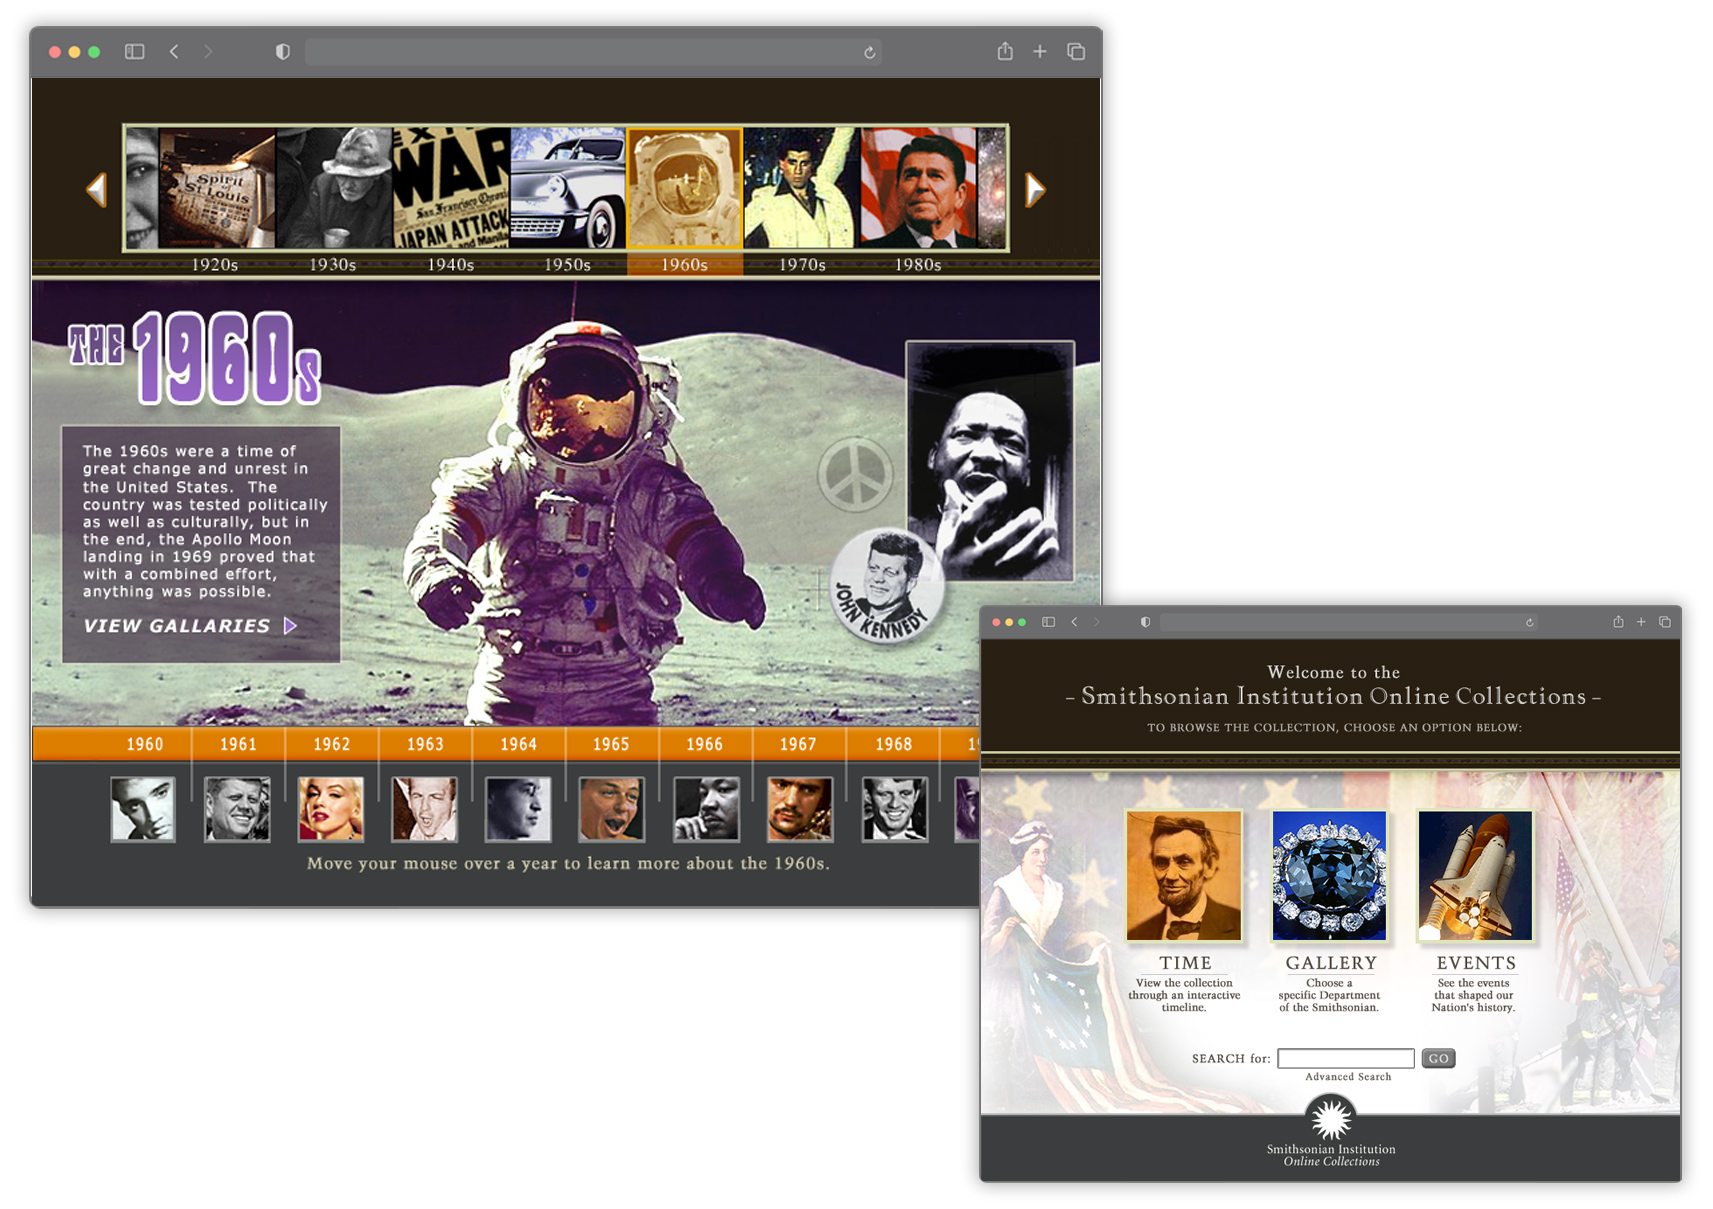 Smithsonian search UI